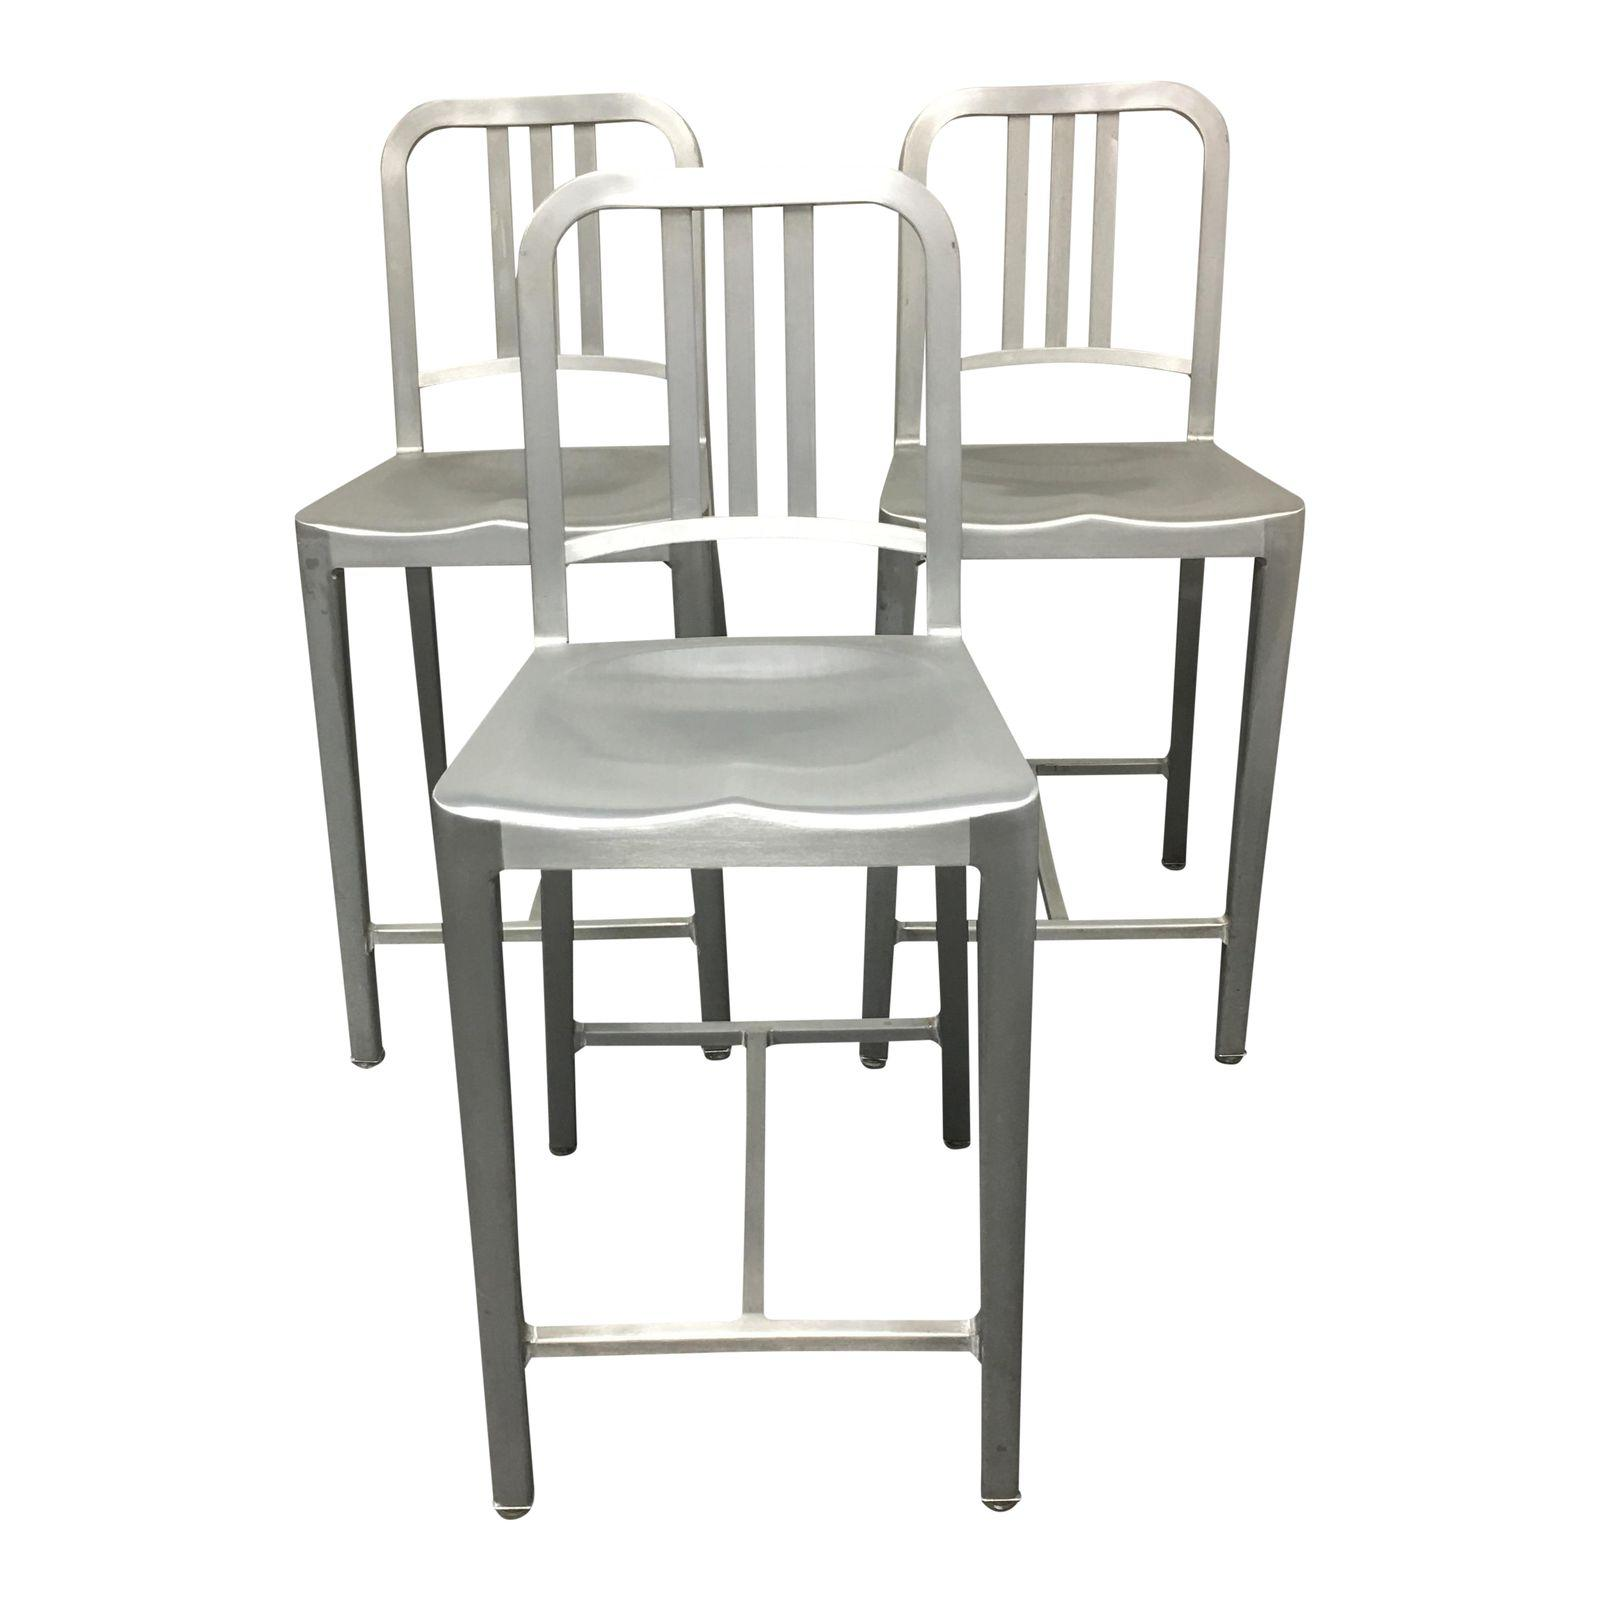 Awesome Set Of Three Emeco Aluminum Counter Stools From Dwr Squirreltailoven Fun Painted Chair Ideas Images Squirreltailovenorg